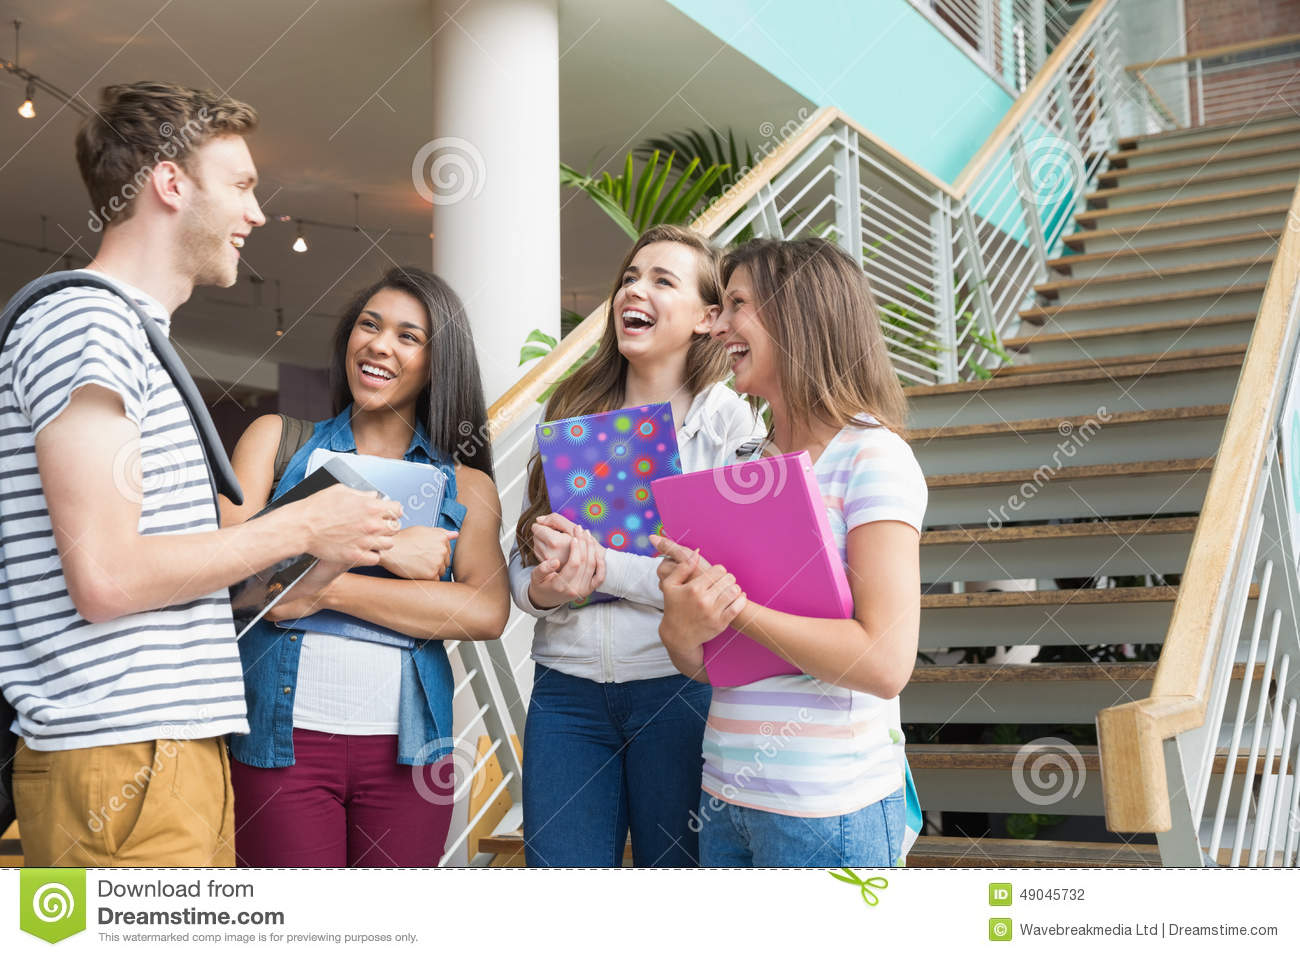 Convenient Products For pensters - Insights smiling students chatting together outside university 49045732